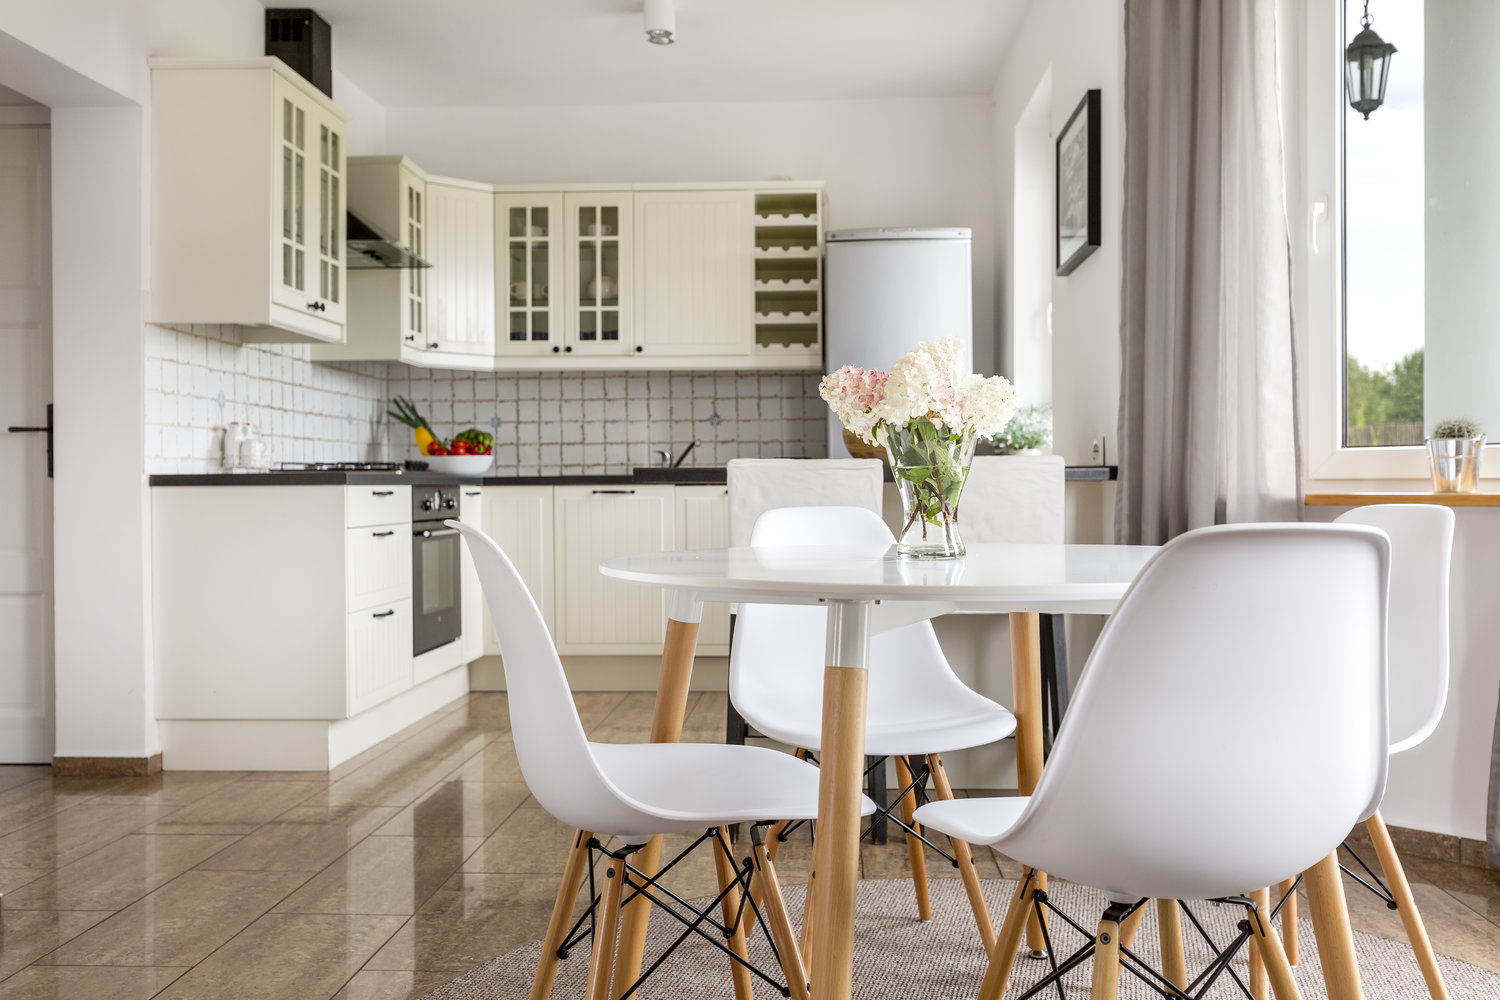 Staging for Living — Home ReVisions